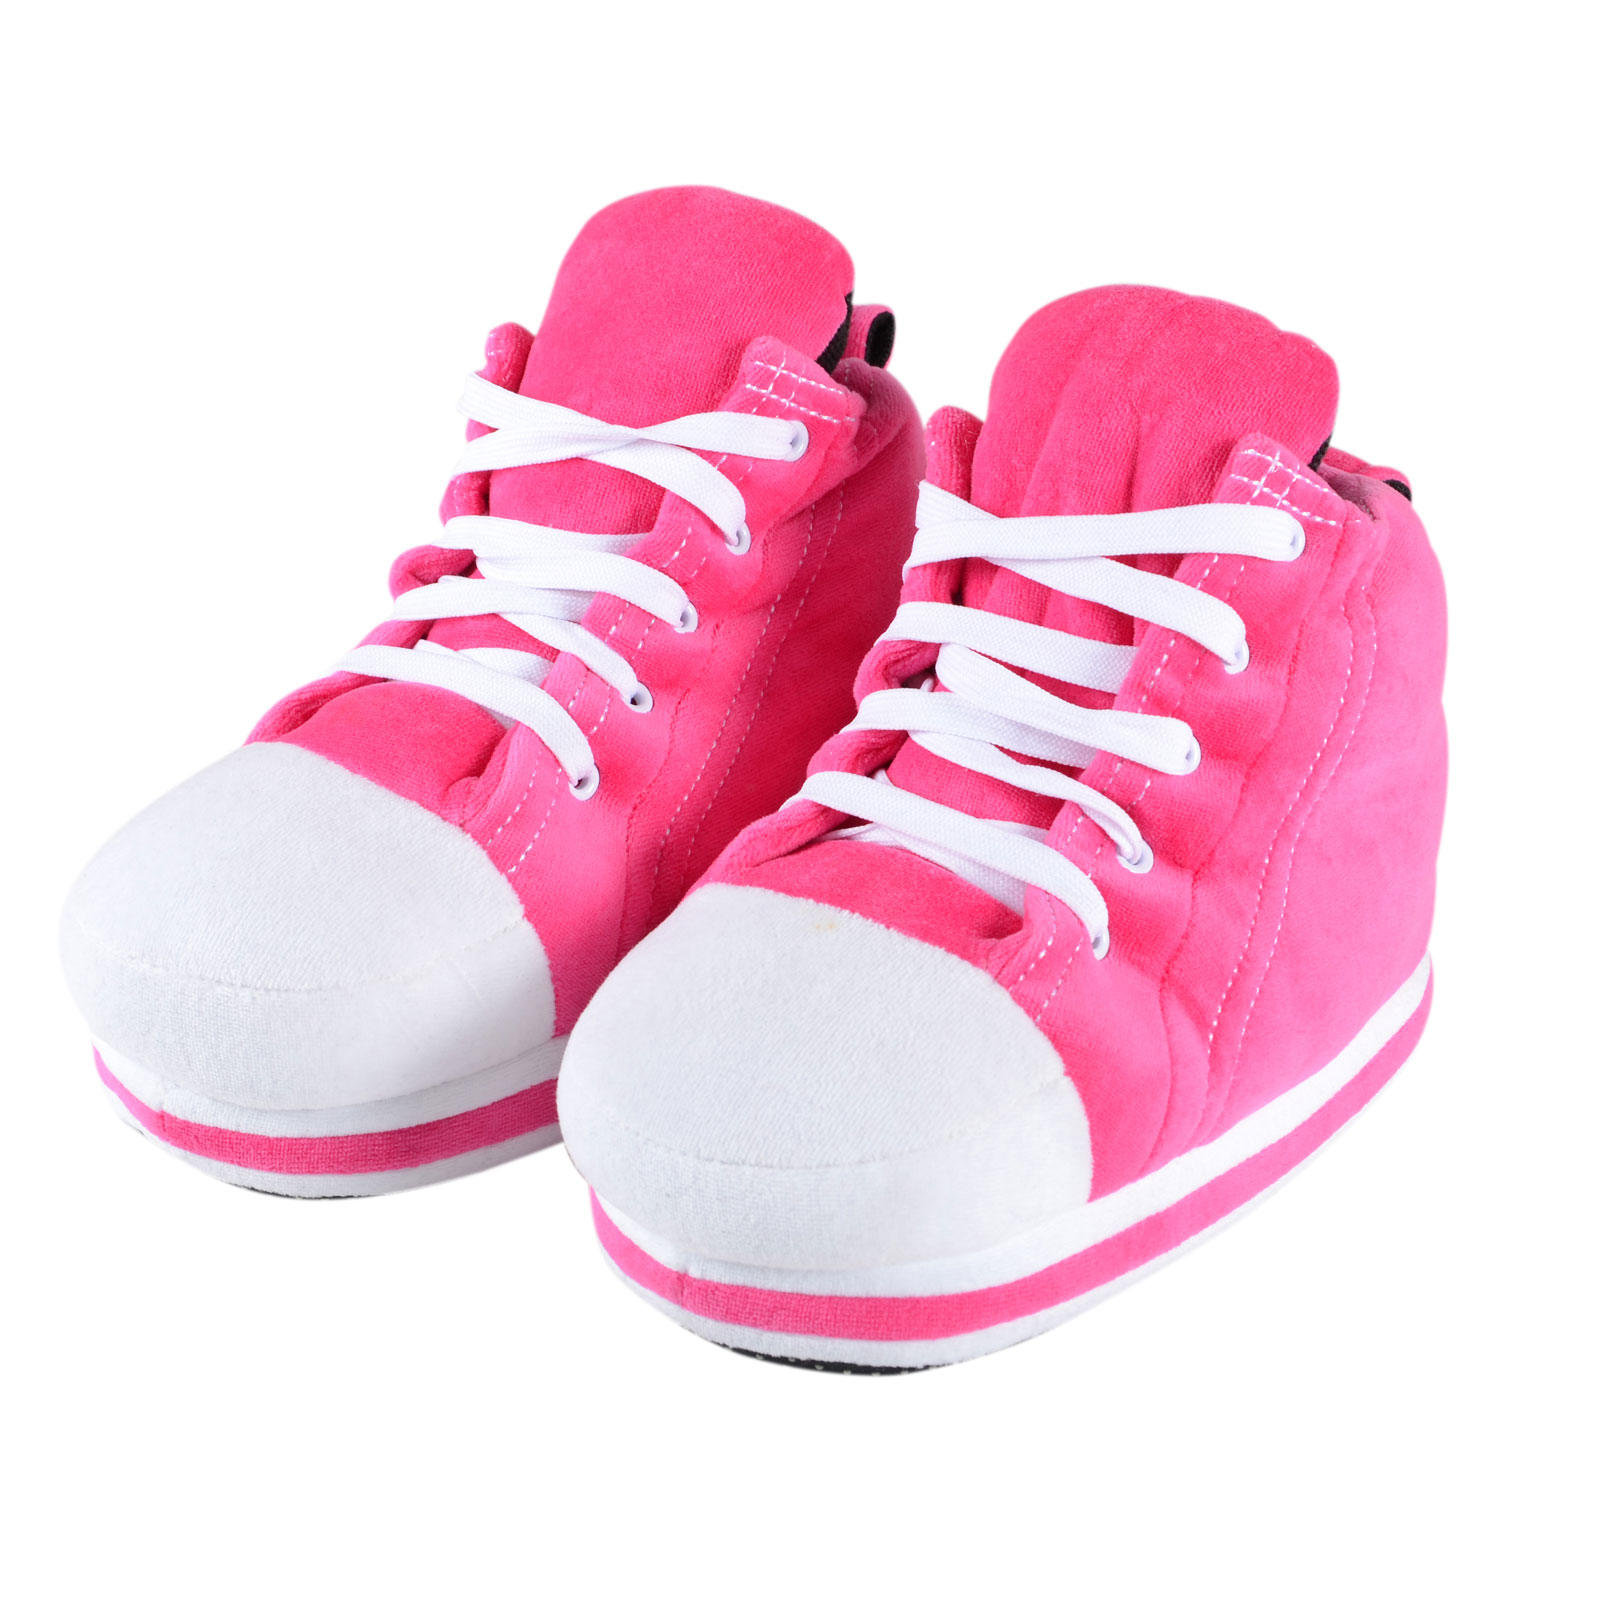 pink sneaker trainer novelty slippers with shoe